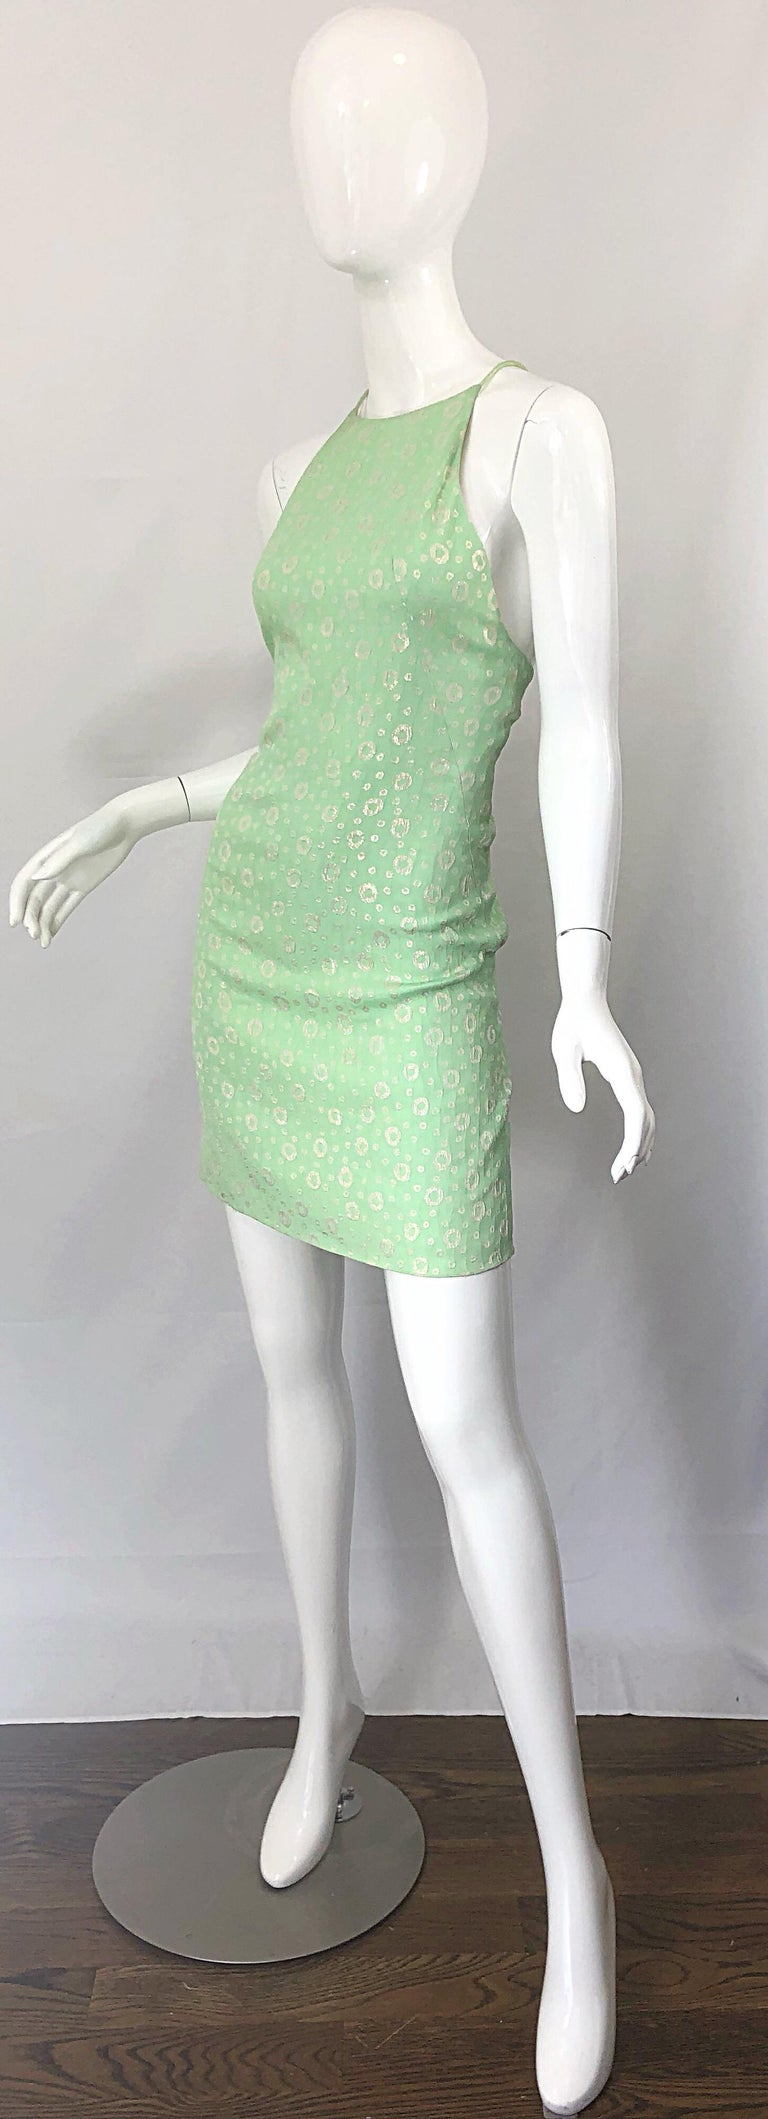 NWT 1990s James Purcell Size 4 / 6 Mint Sherbet Green Gold Racerback Silk Dress For Sale 6